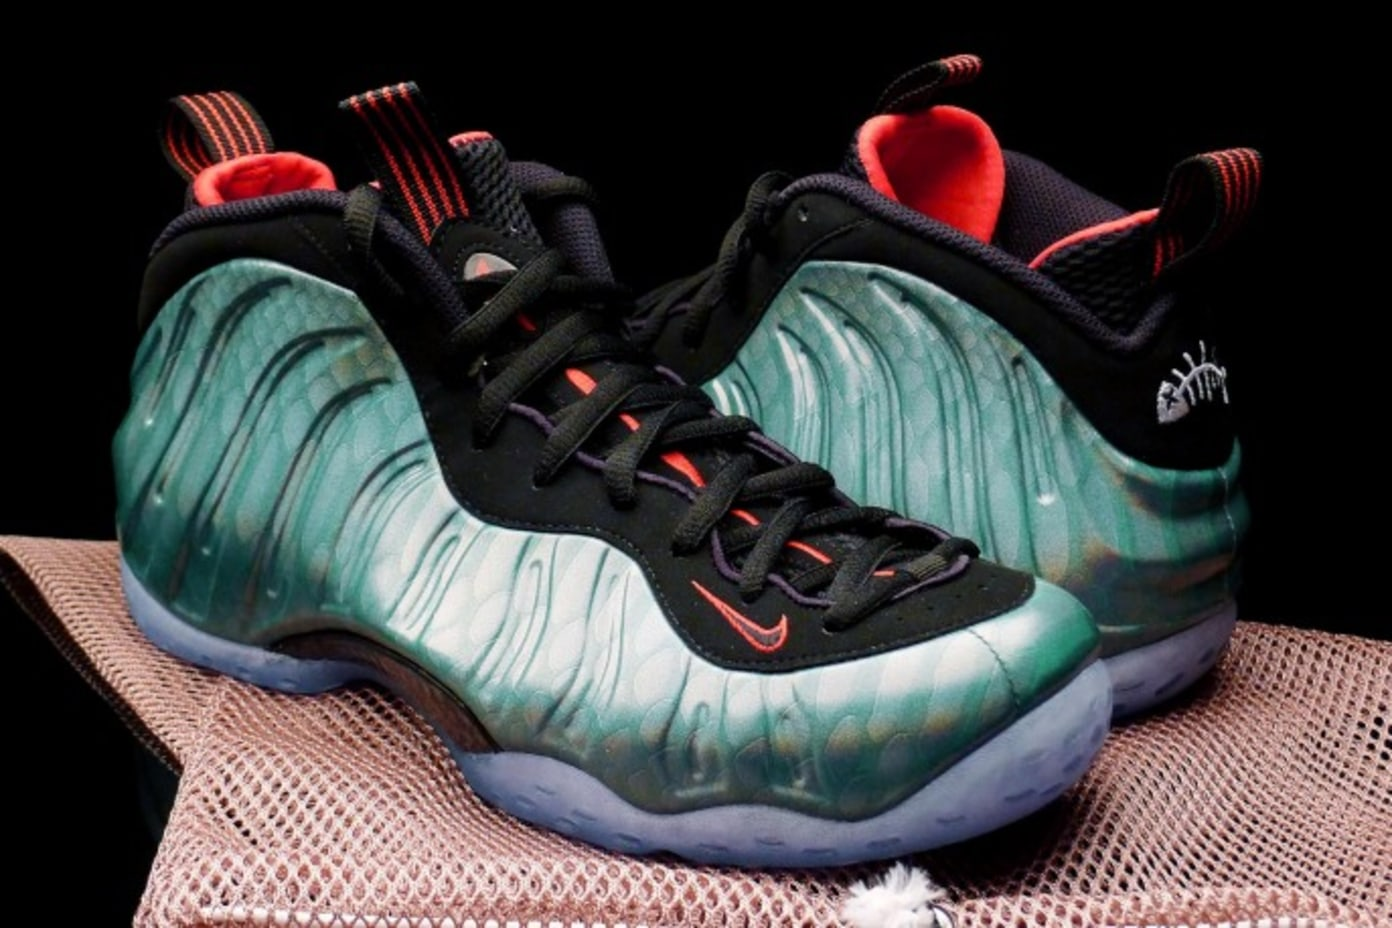 The Nike Air Foamposite One - Gone Fishing